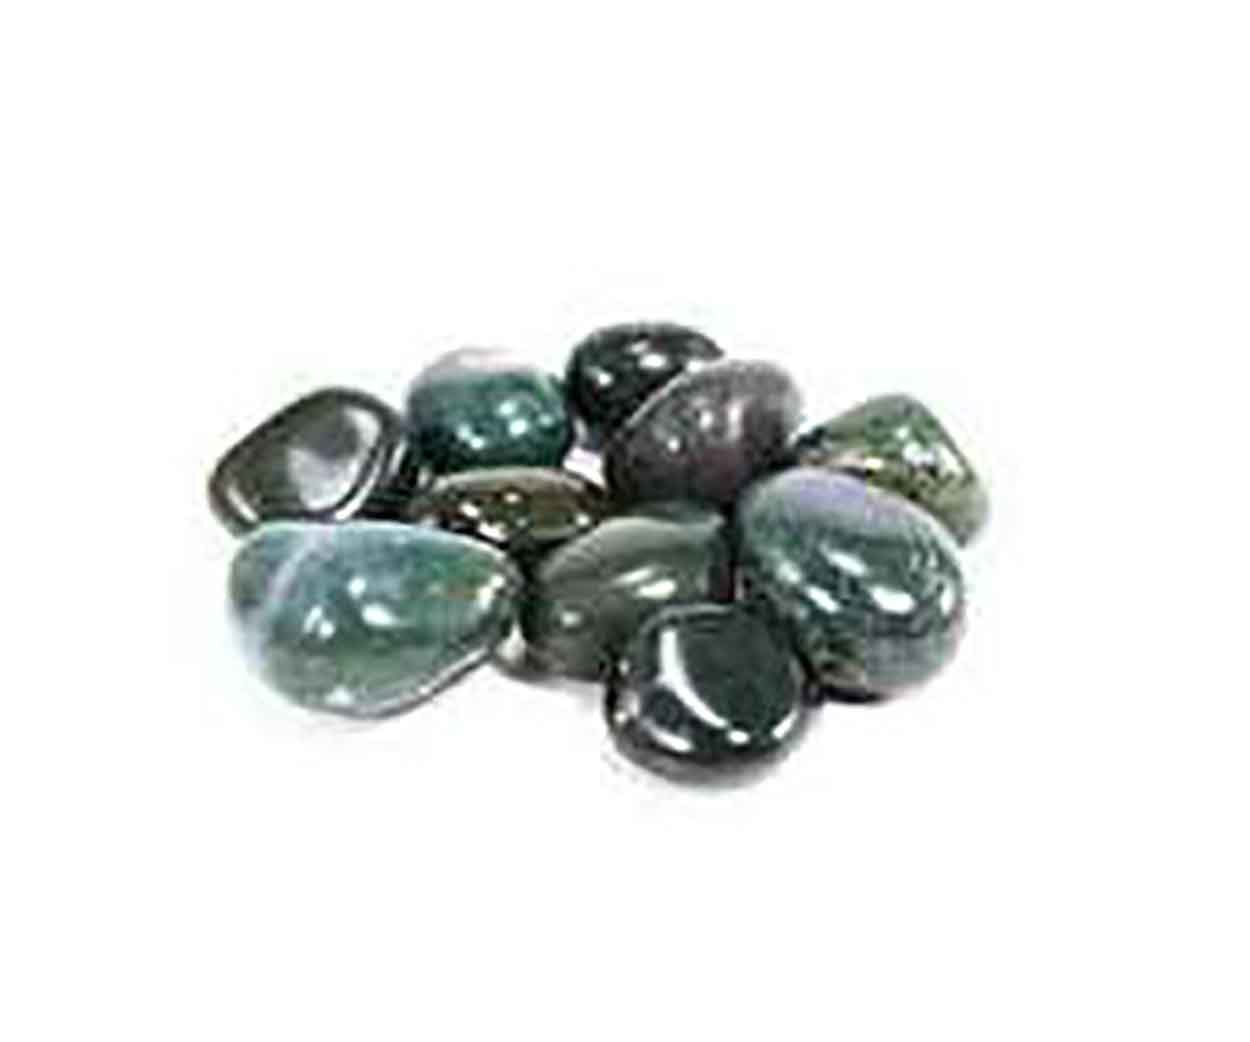 One Bloodstone TumbledCrystal Dreams BloodStone. Come And Get One Of Your Own.